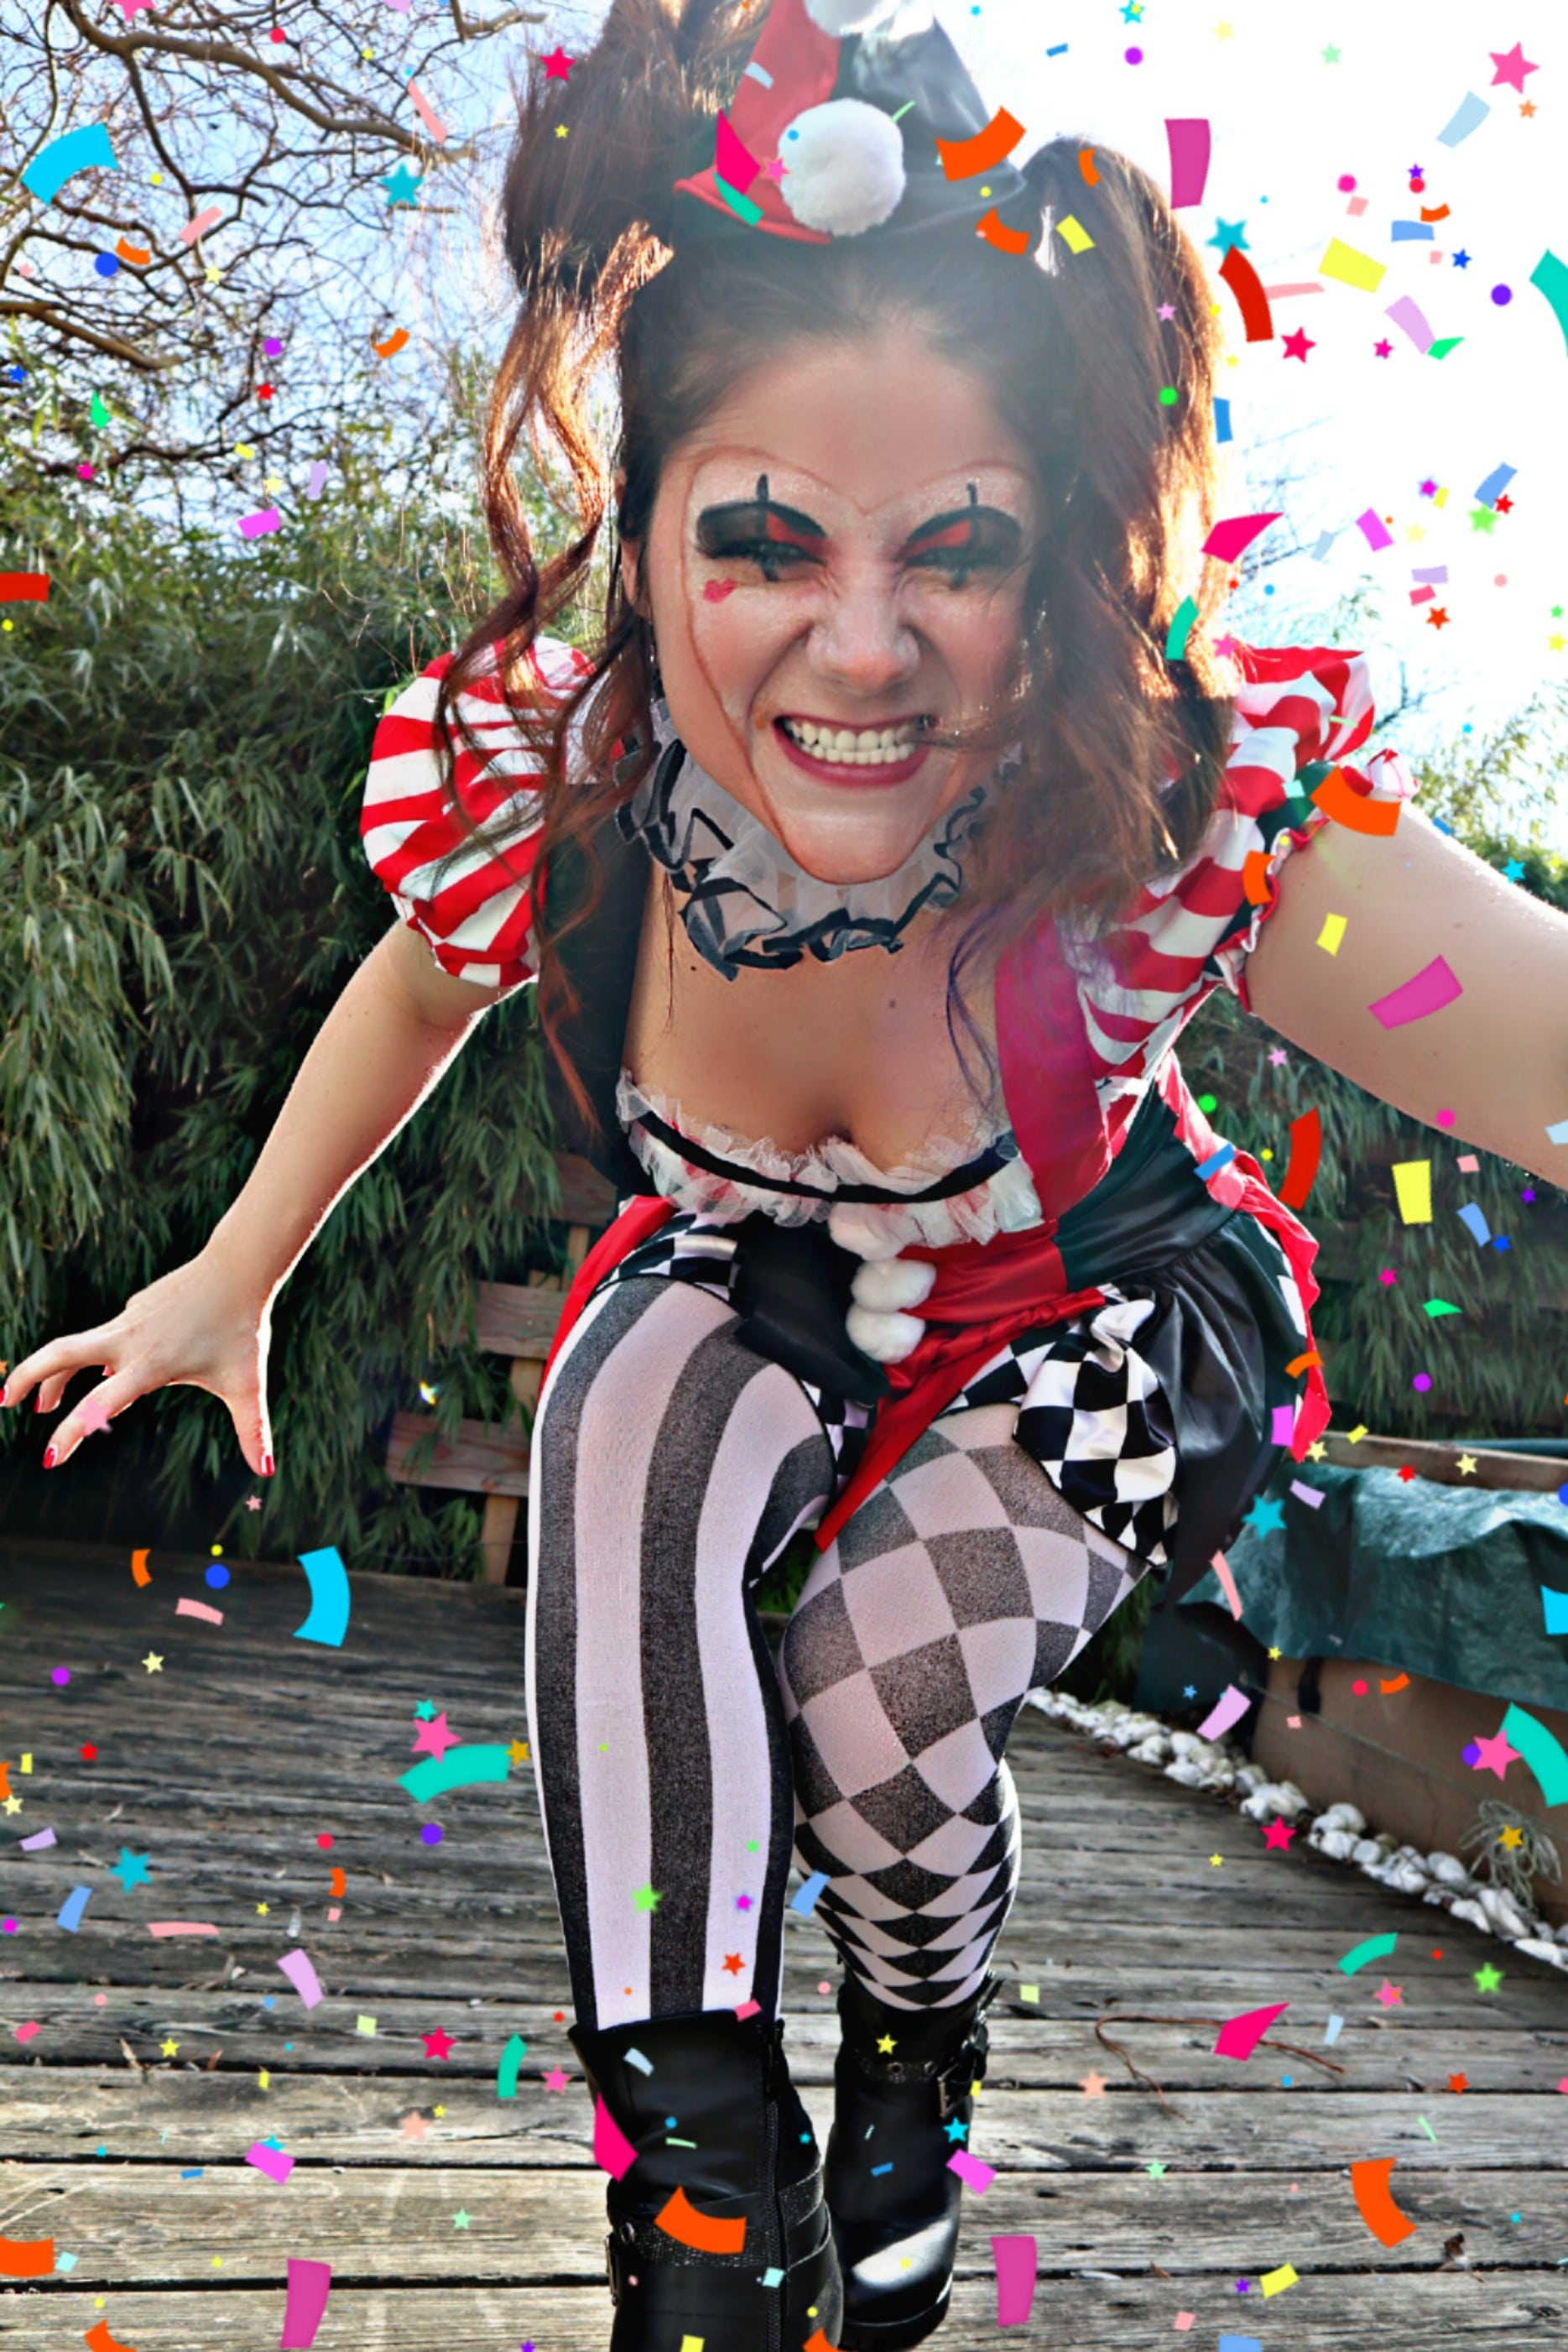 Clown Schminken Suess Mein Clown Harlekina Style Inkl Make Up Tutorial View Of My Life